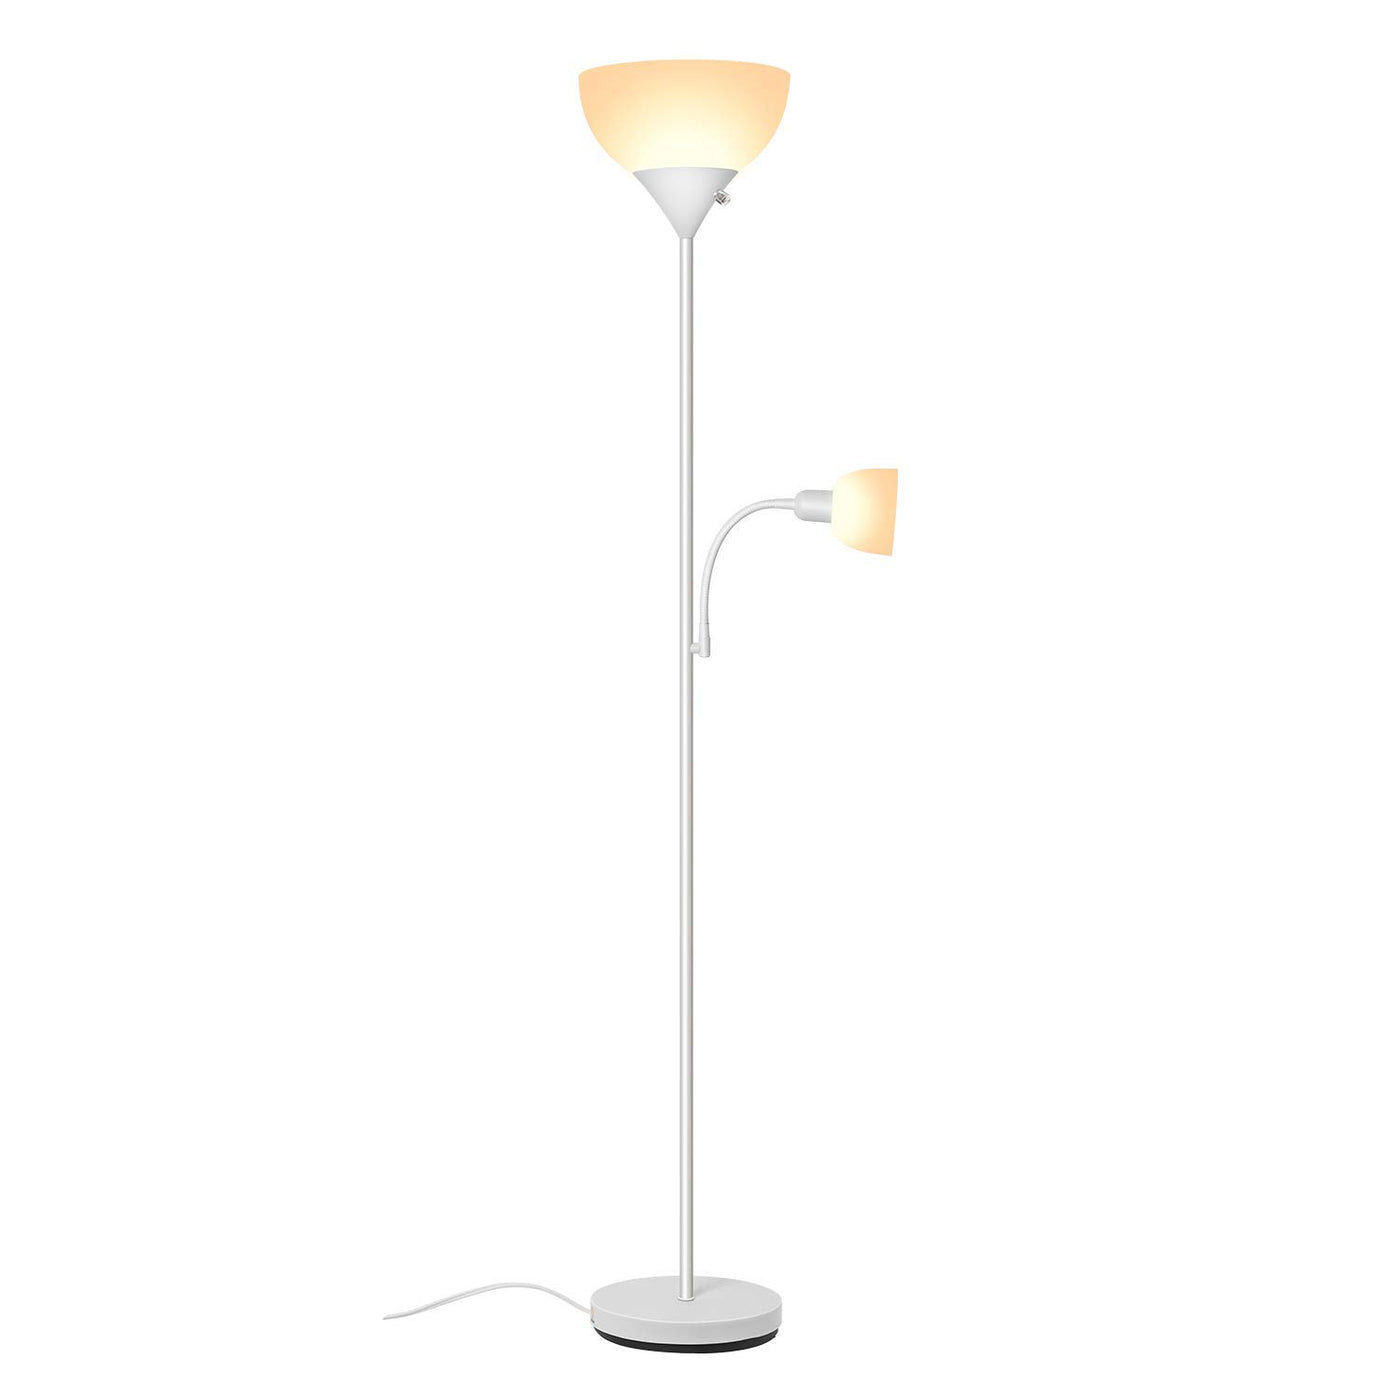 Sunllipe Led Torchiere Floor Lamp With Reading Lamp 70 5 Energy